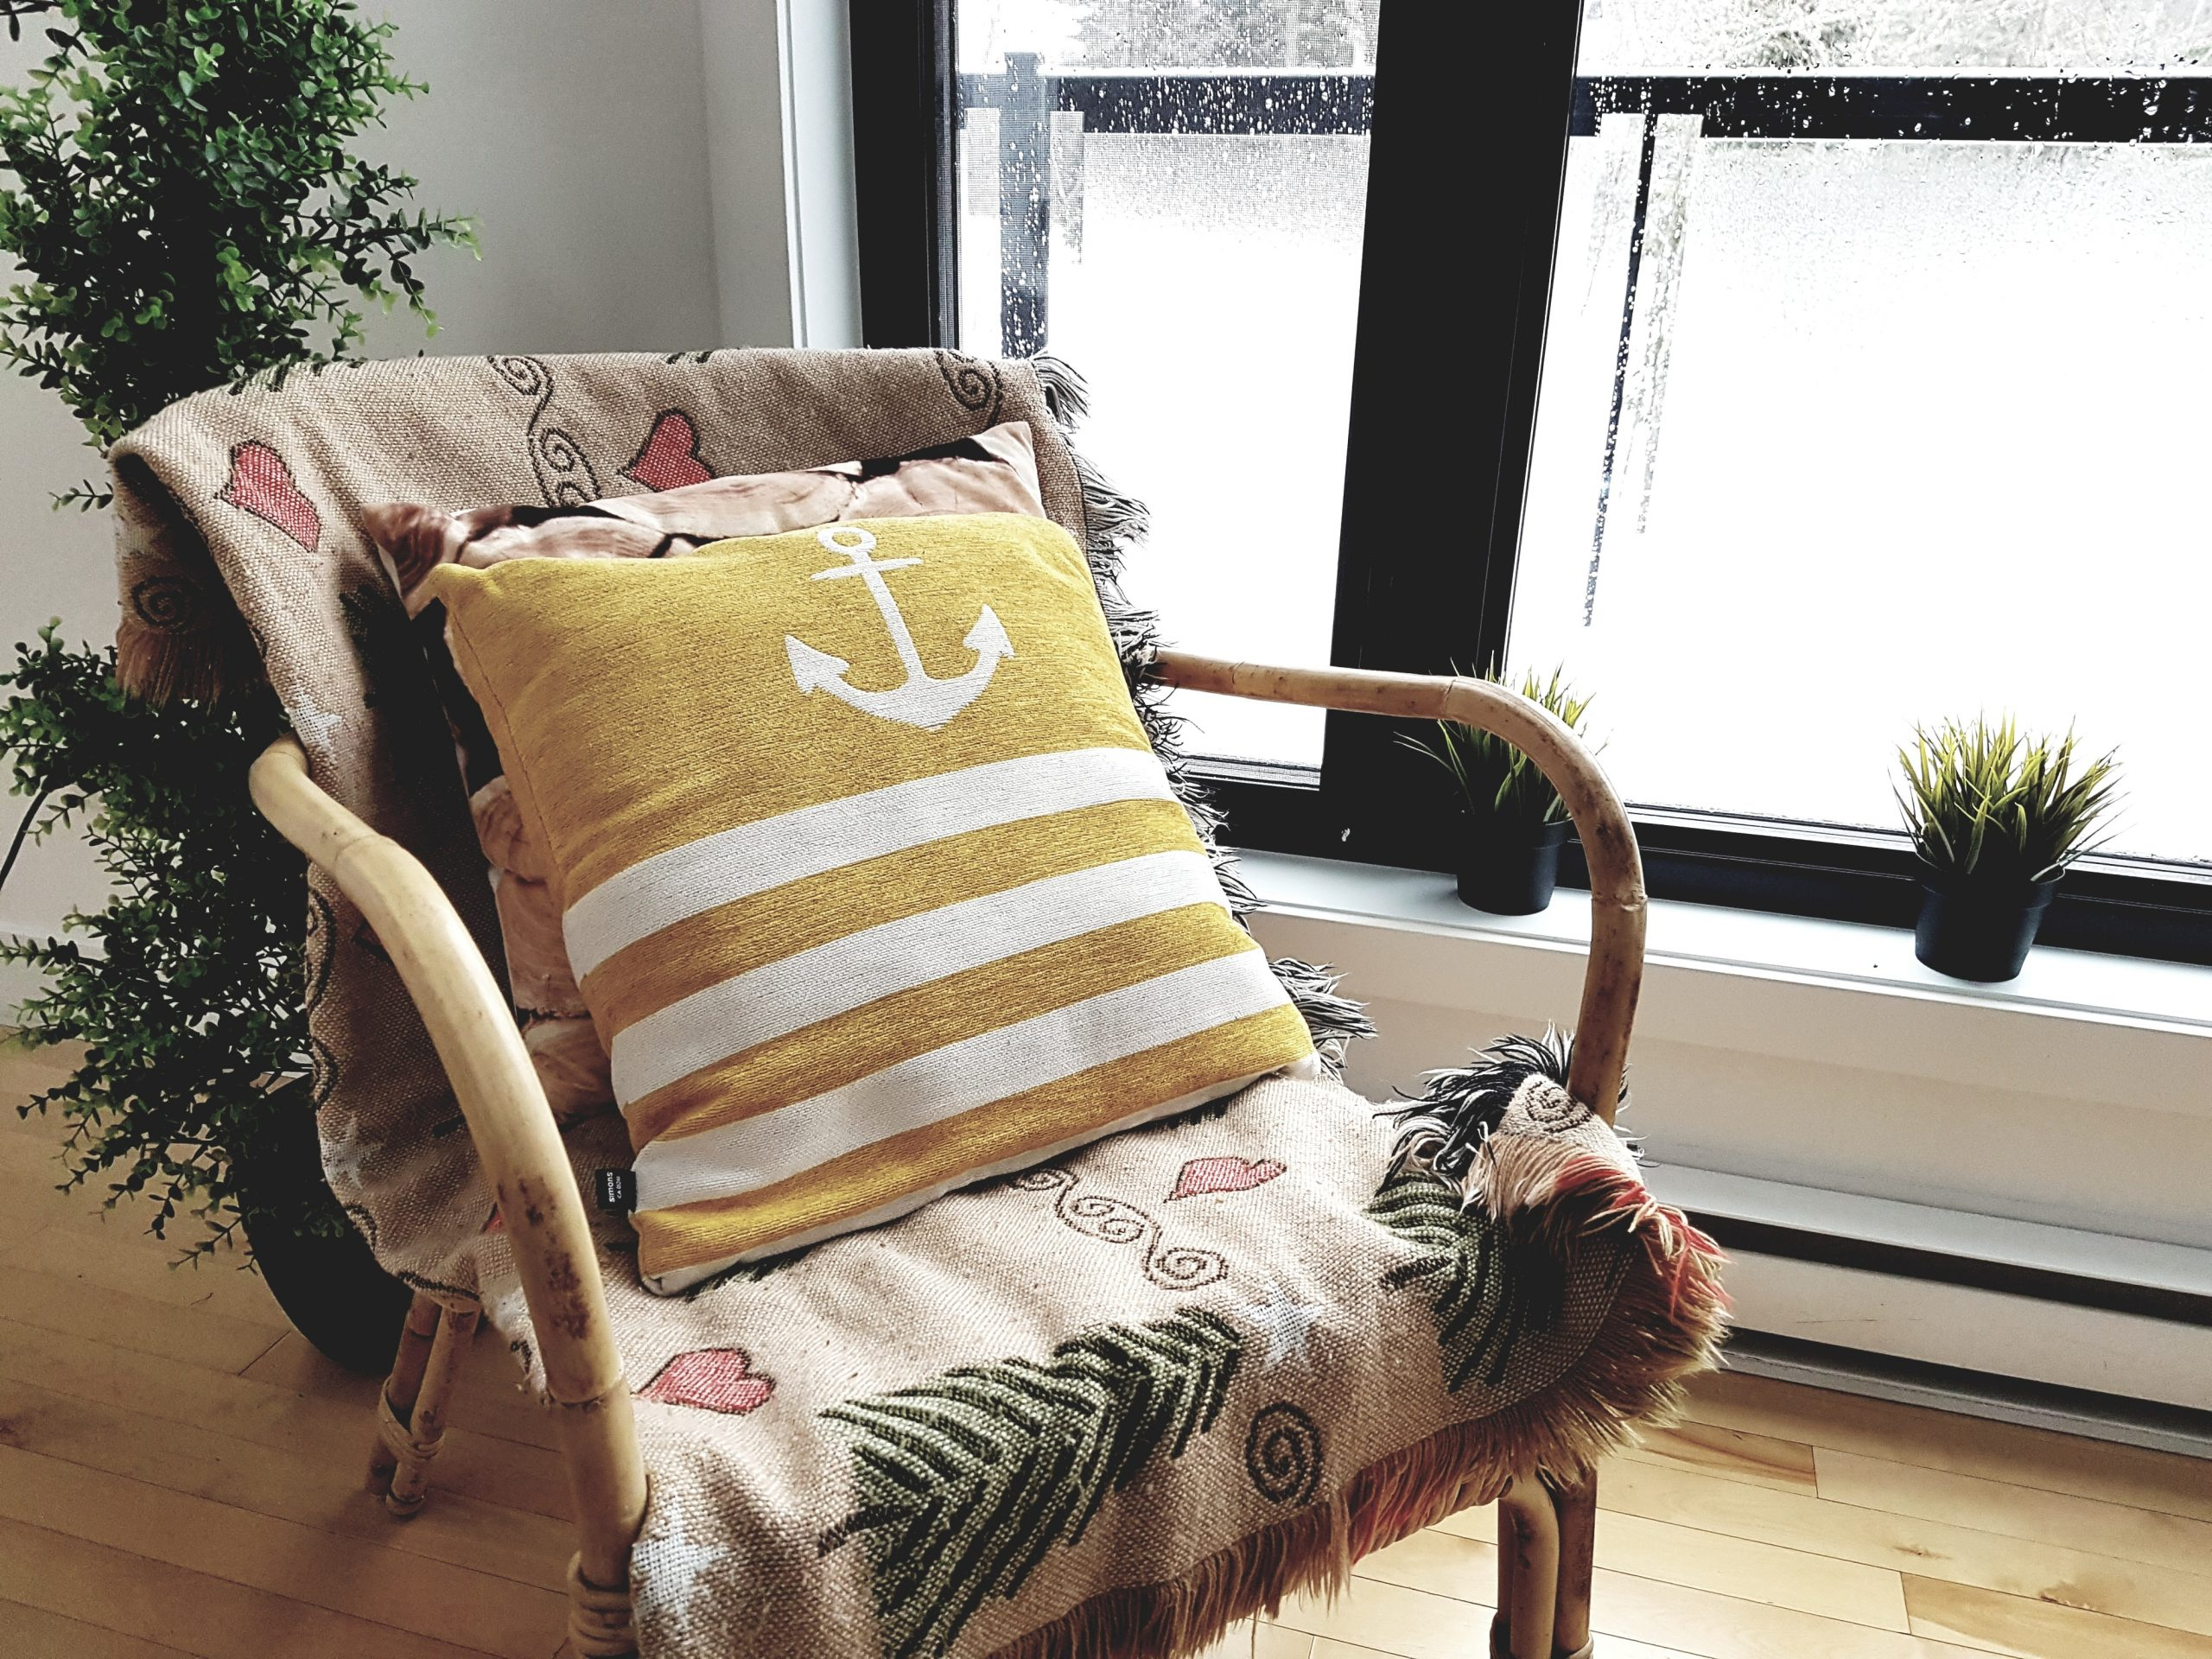 wicker chair covered by a patterned throw and yellow nautical cushion